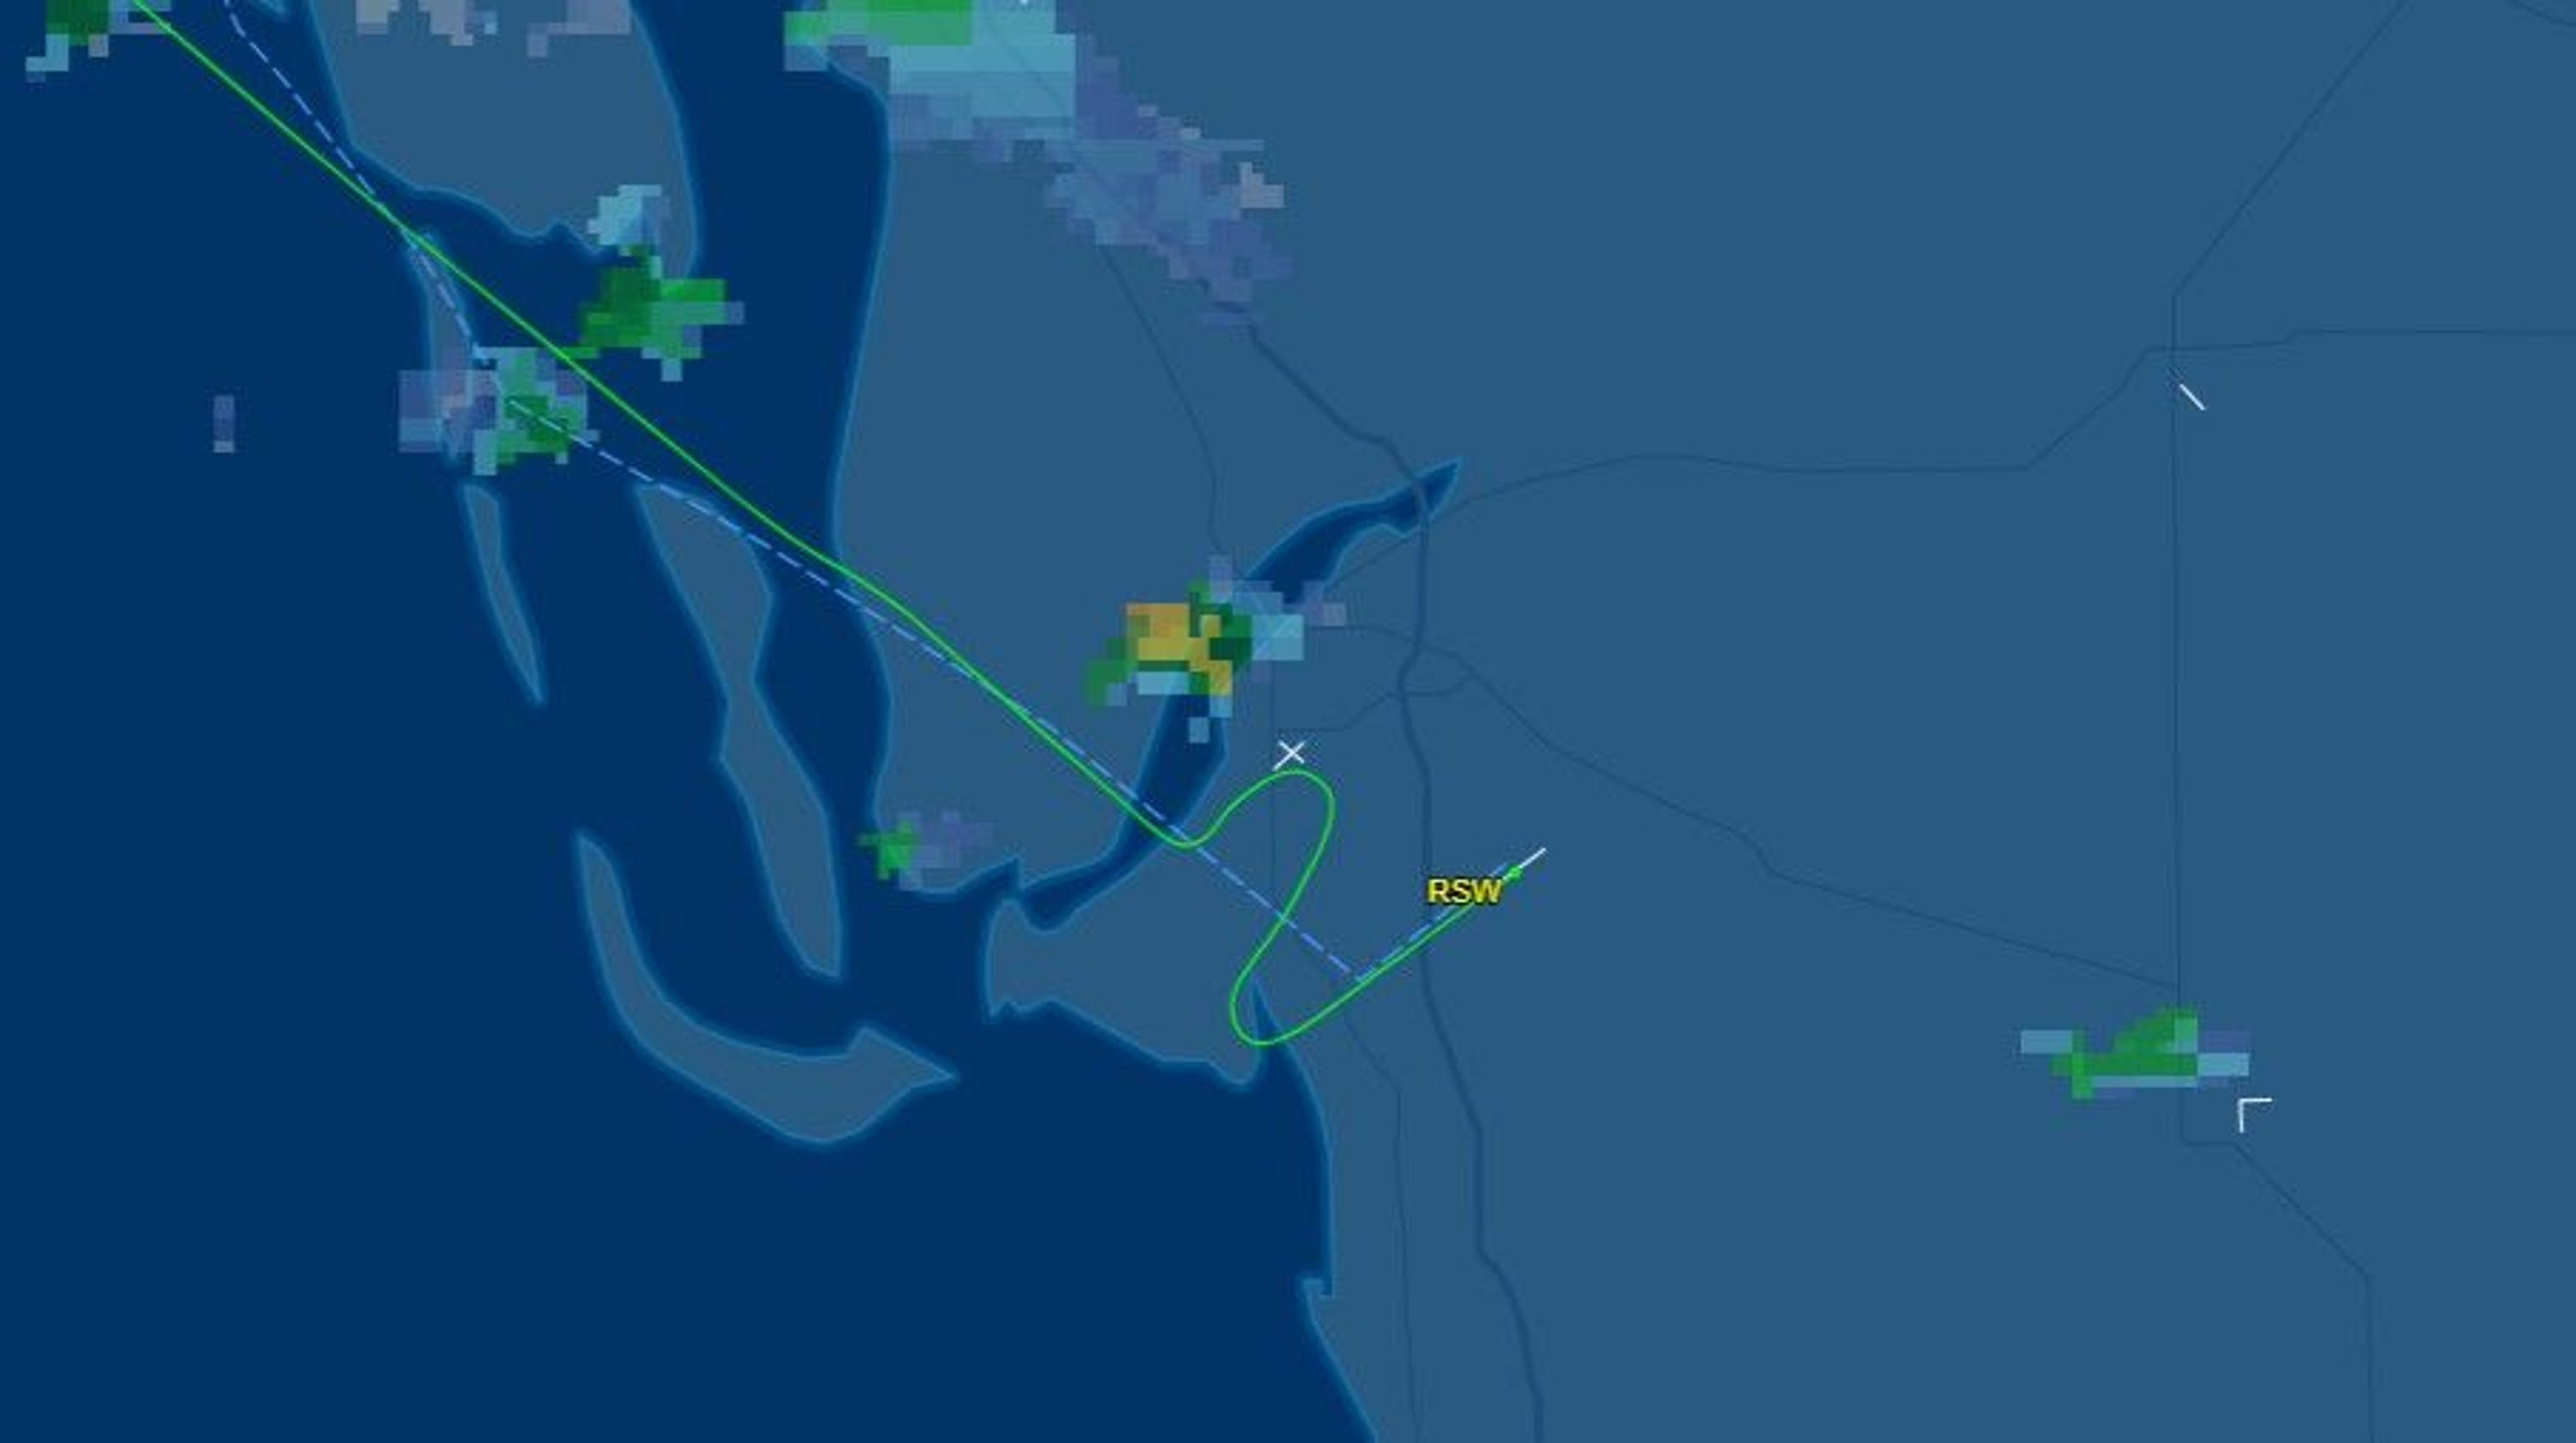 American Airlines flight almost lands at Page Field instead ... on map of ten thousand islands, map of st pete, map of omaha council bluffs, map of ft morgan, map of fort pierce, map of ft jackson, map of ft lauderdale, map of casselberry, map fort myers fl, map of ft walton, map of fort myers beach, map of ft wood, map of florida, map of punta gorda, map of apopka, map of ft lewis, map of ft collins co, map of inverness, map of gulfport, map of lake buena vista,